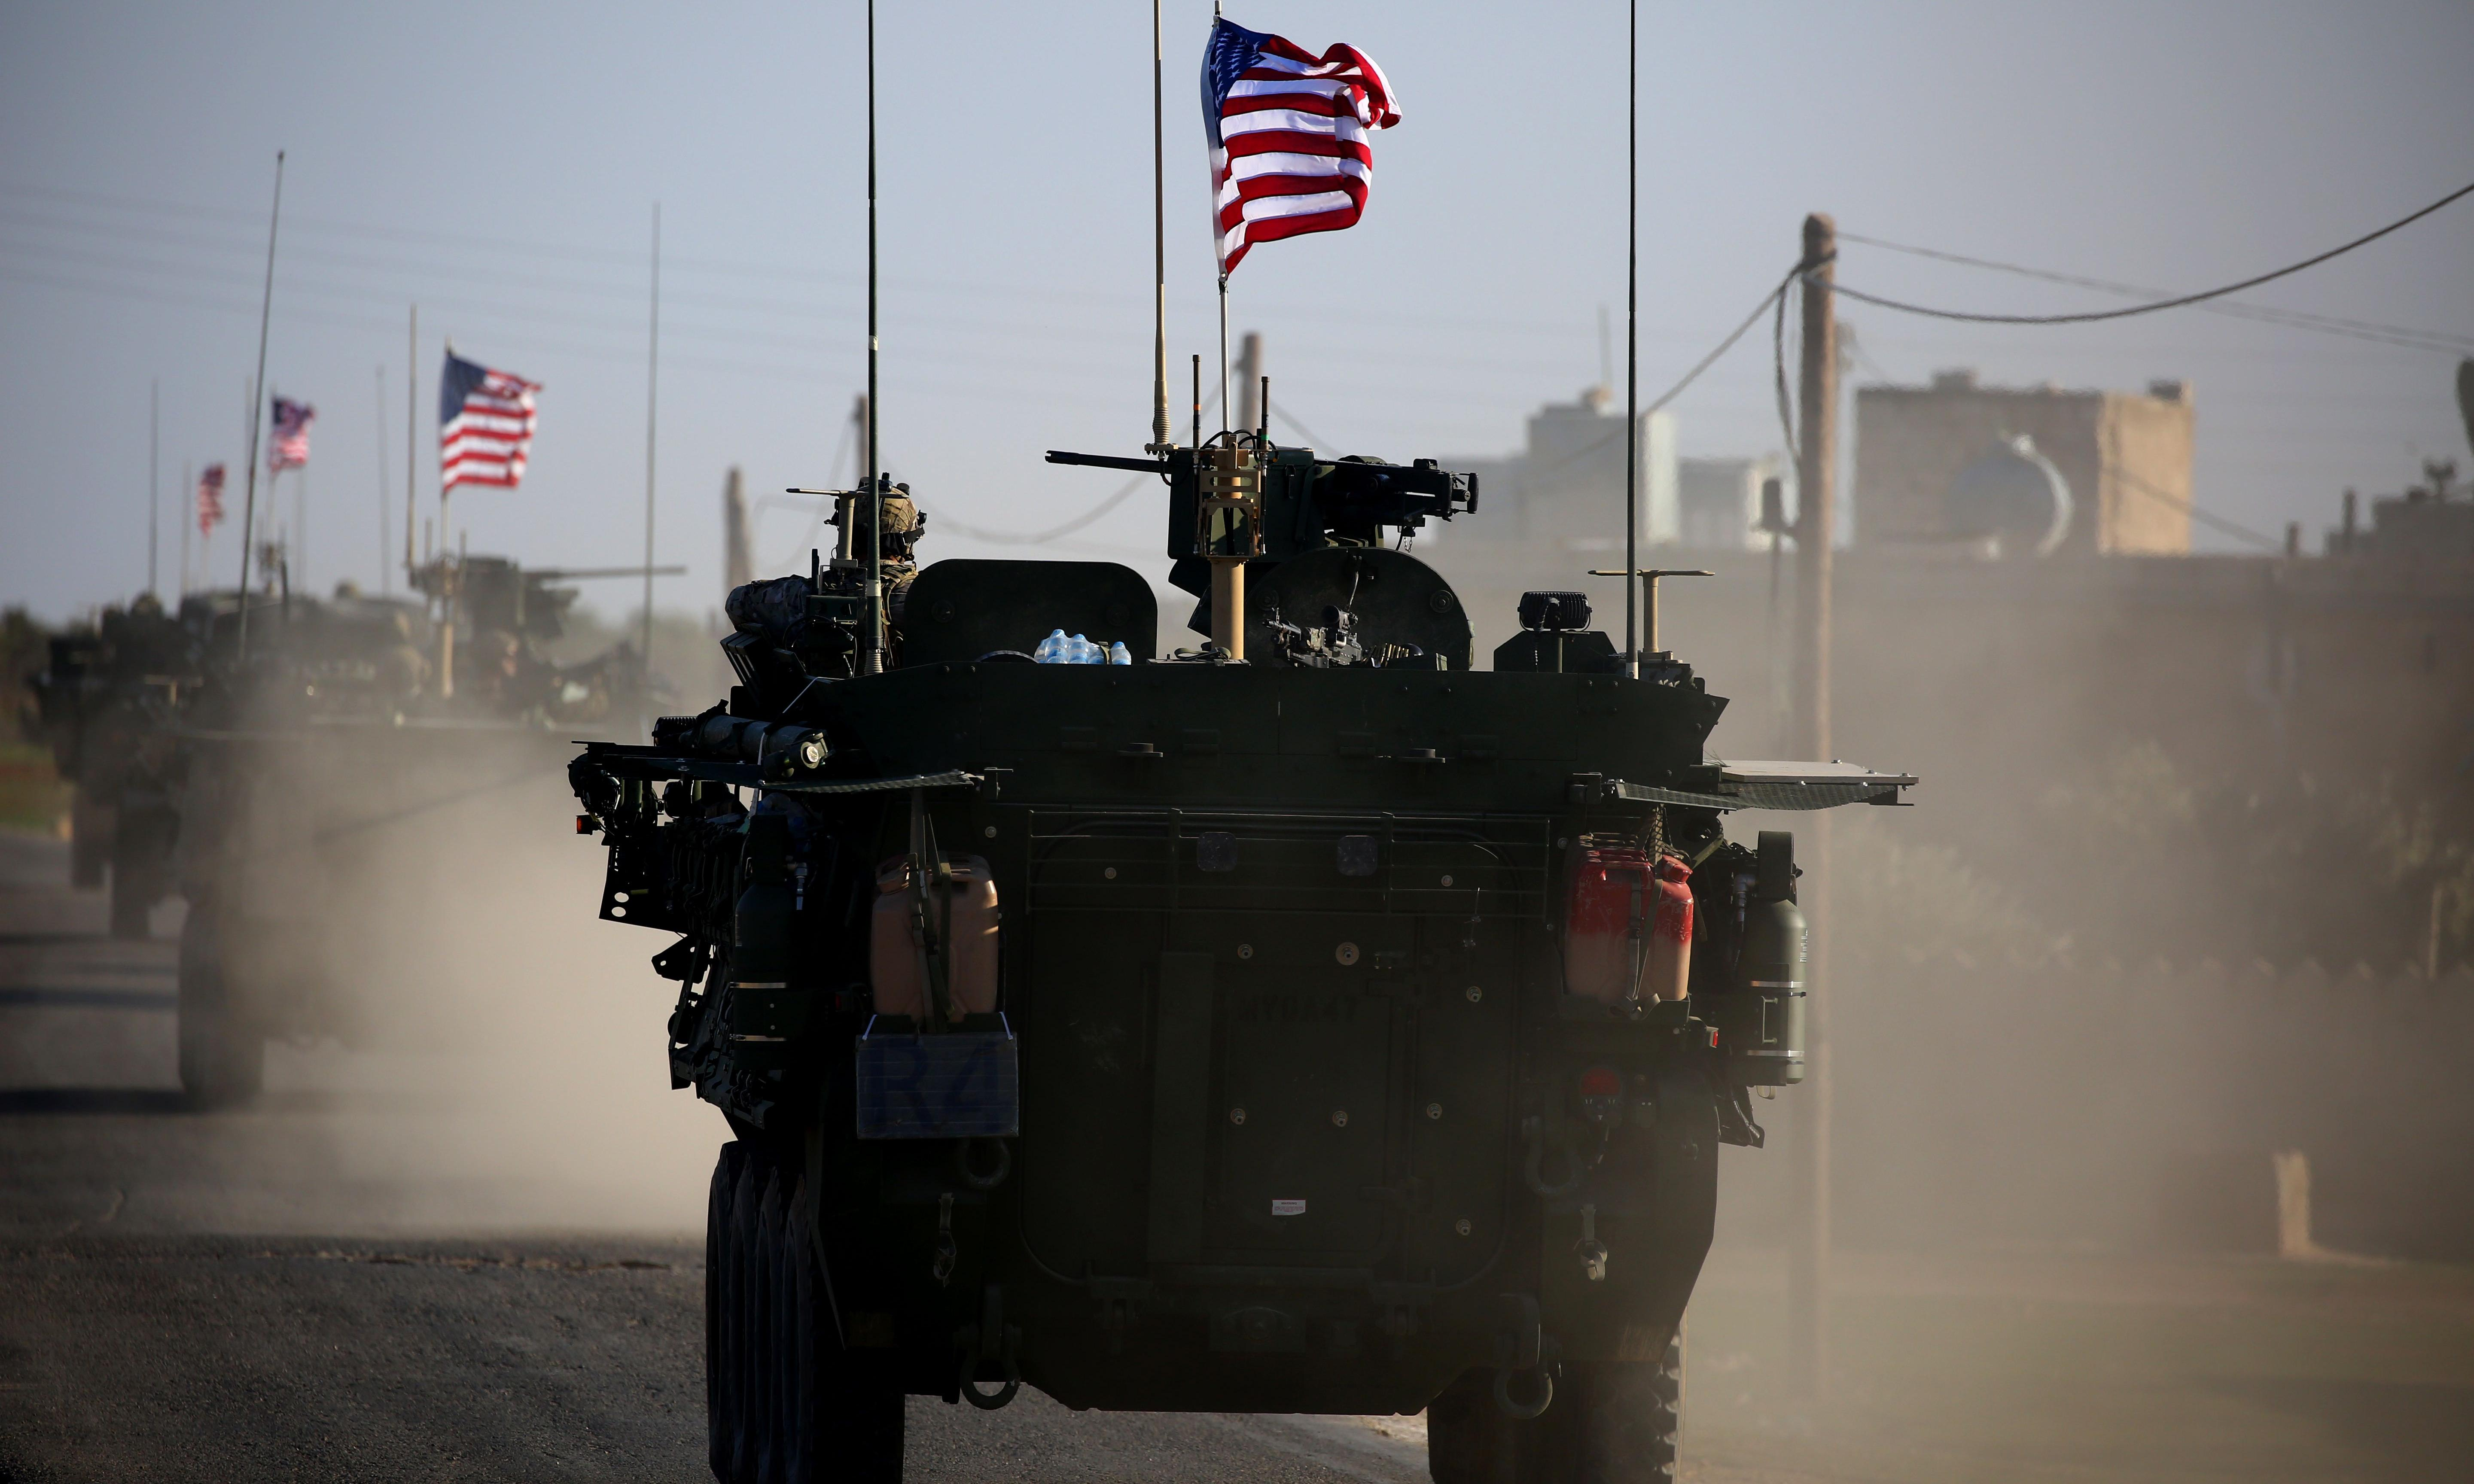 Pentagon to present plans to send 10,000 troops to Middle East, officials say